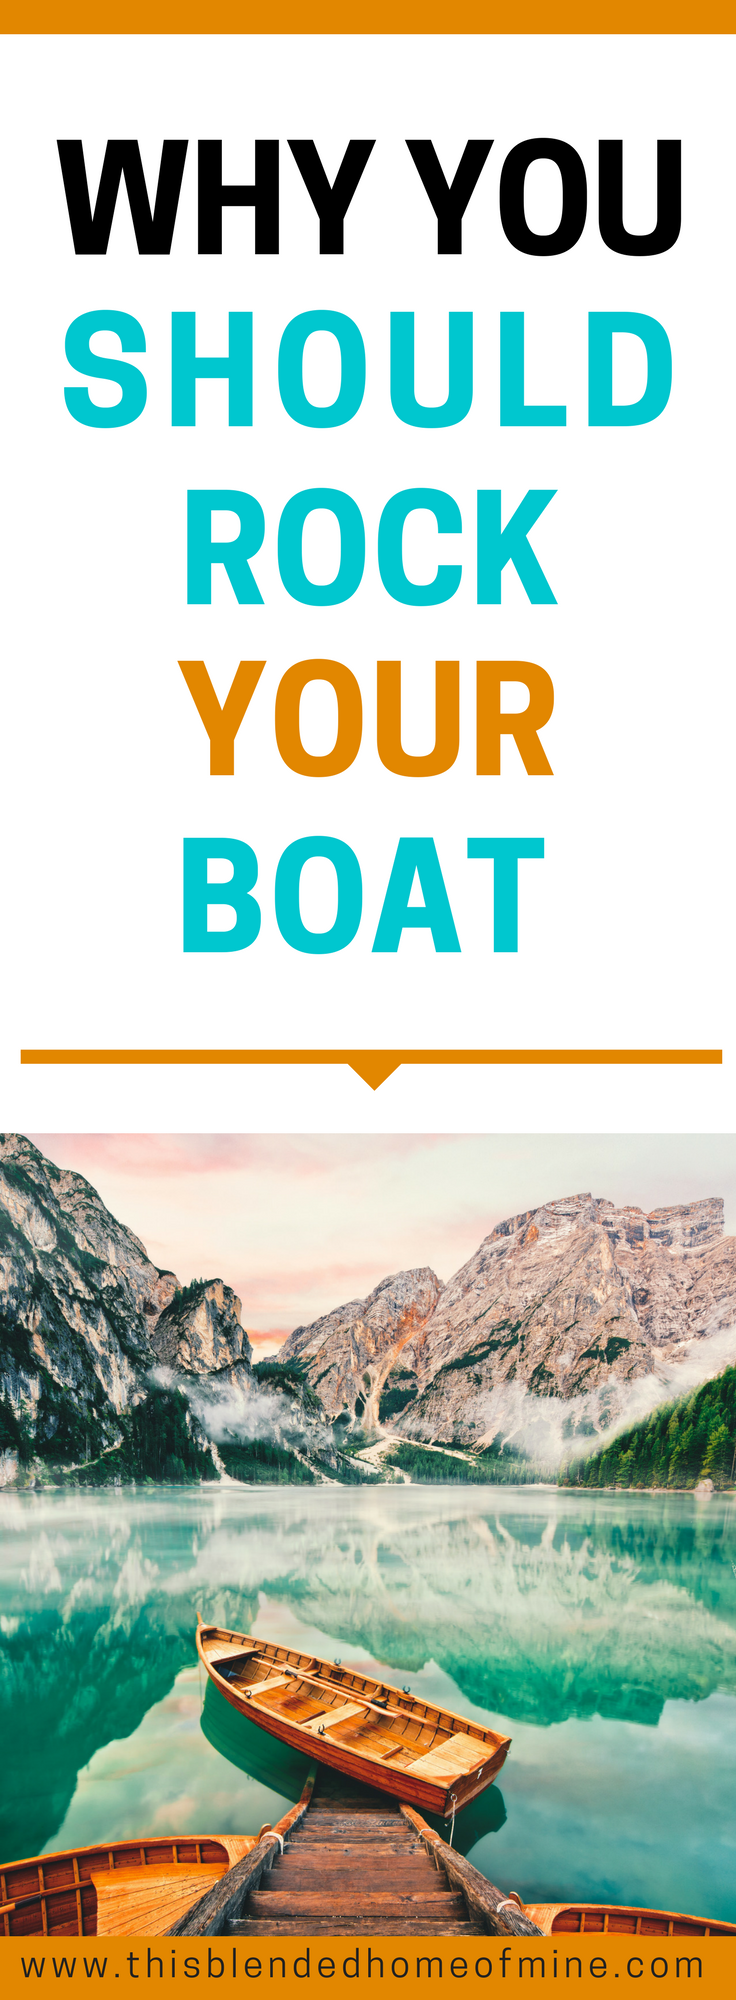 Why You Should Rock Your Boat - This Blended Home of Mine _ Gut feeling, Trust your gut, Intuition, Self Improvement, Personal Development